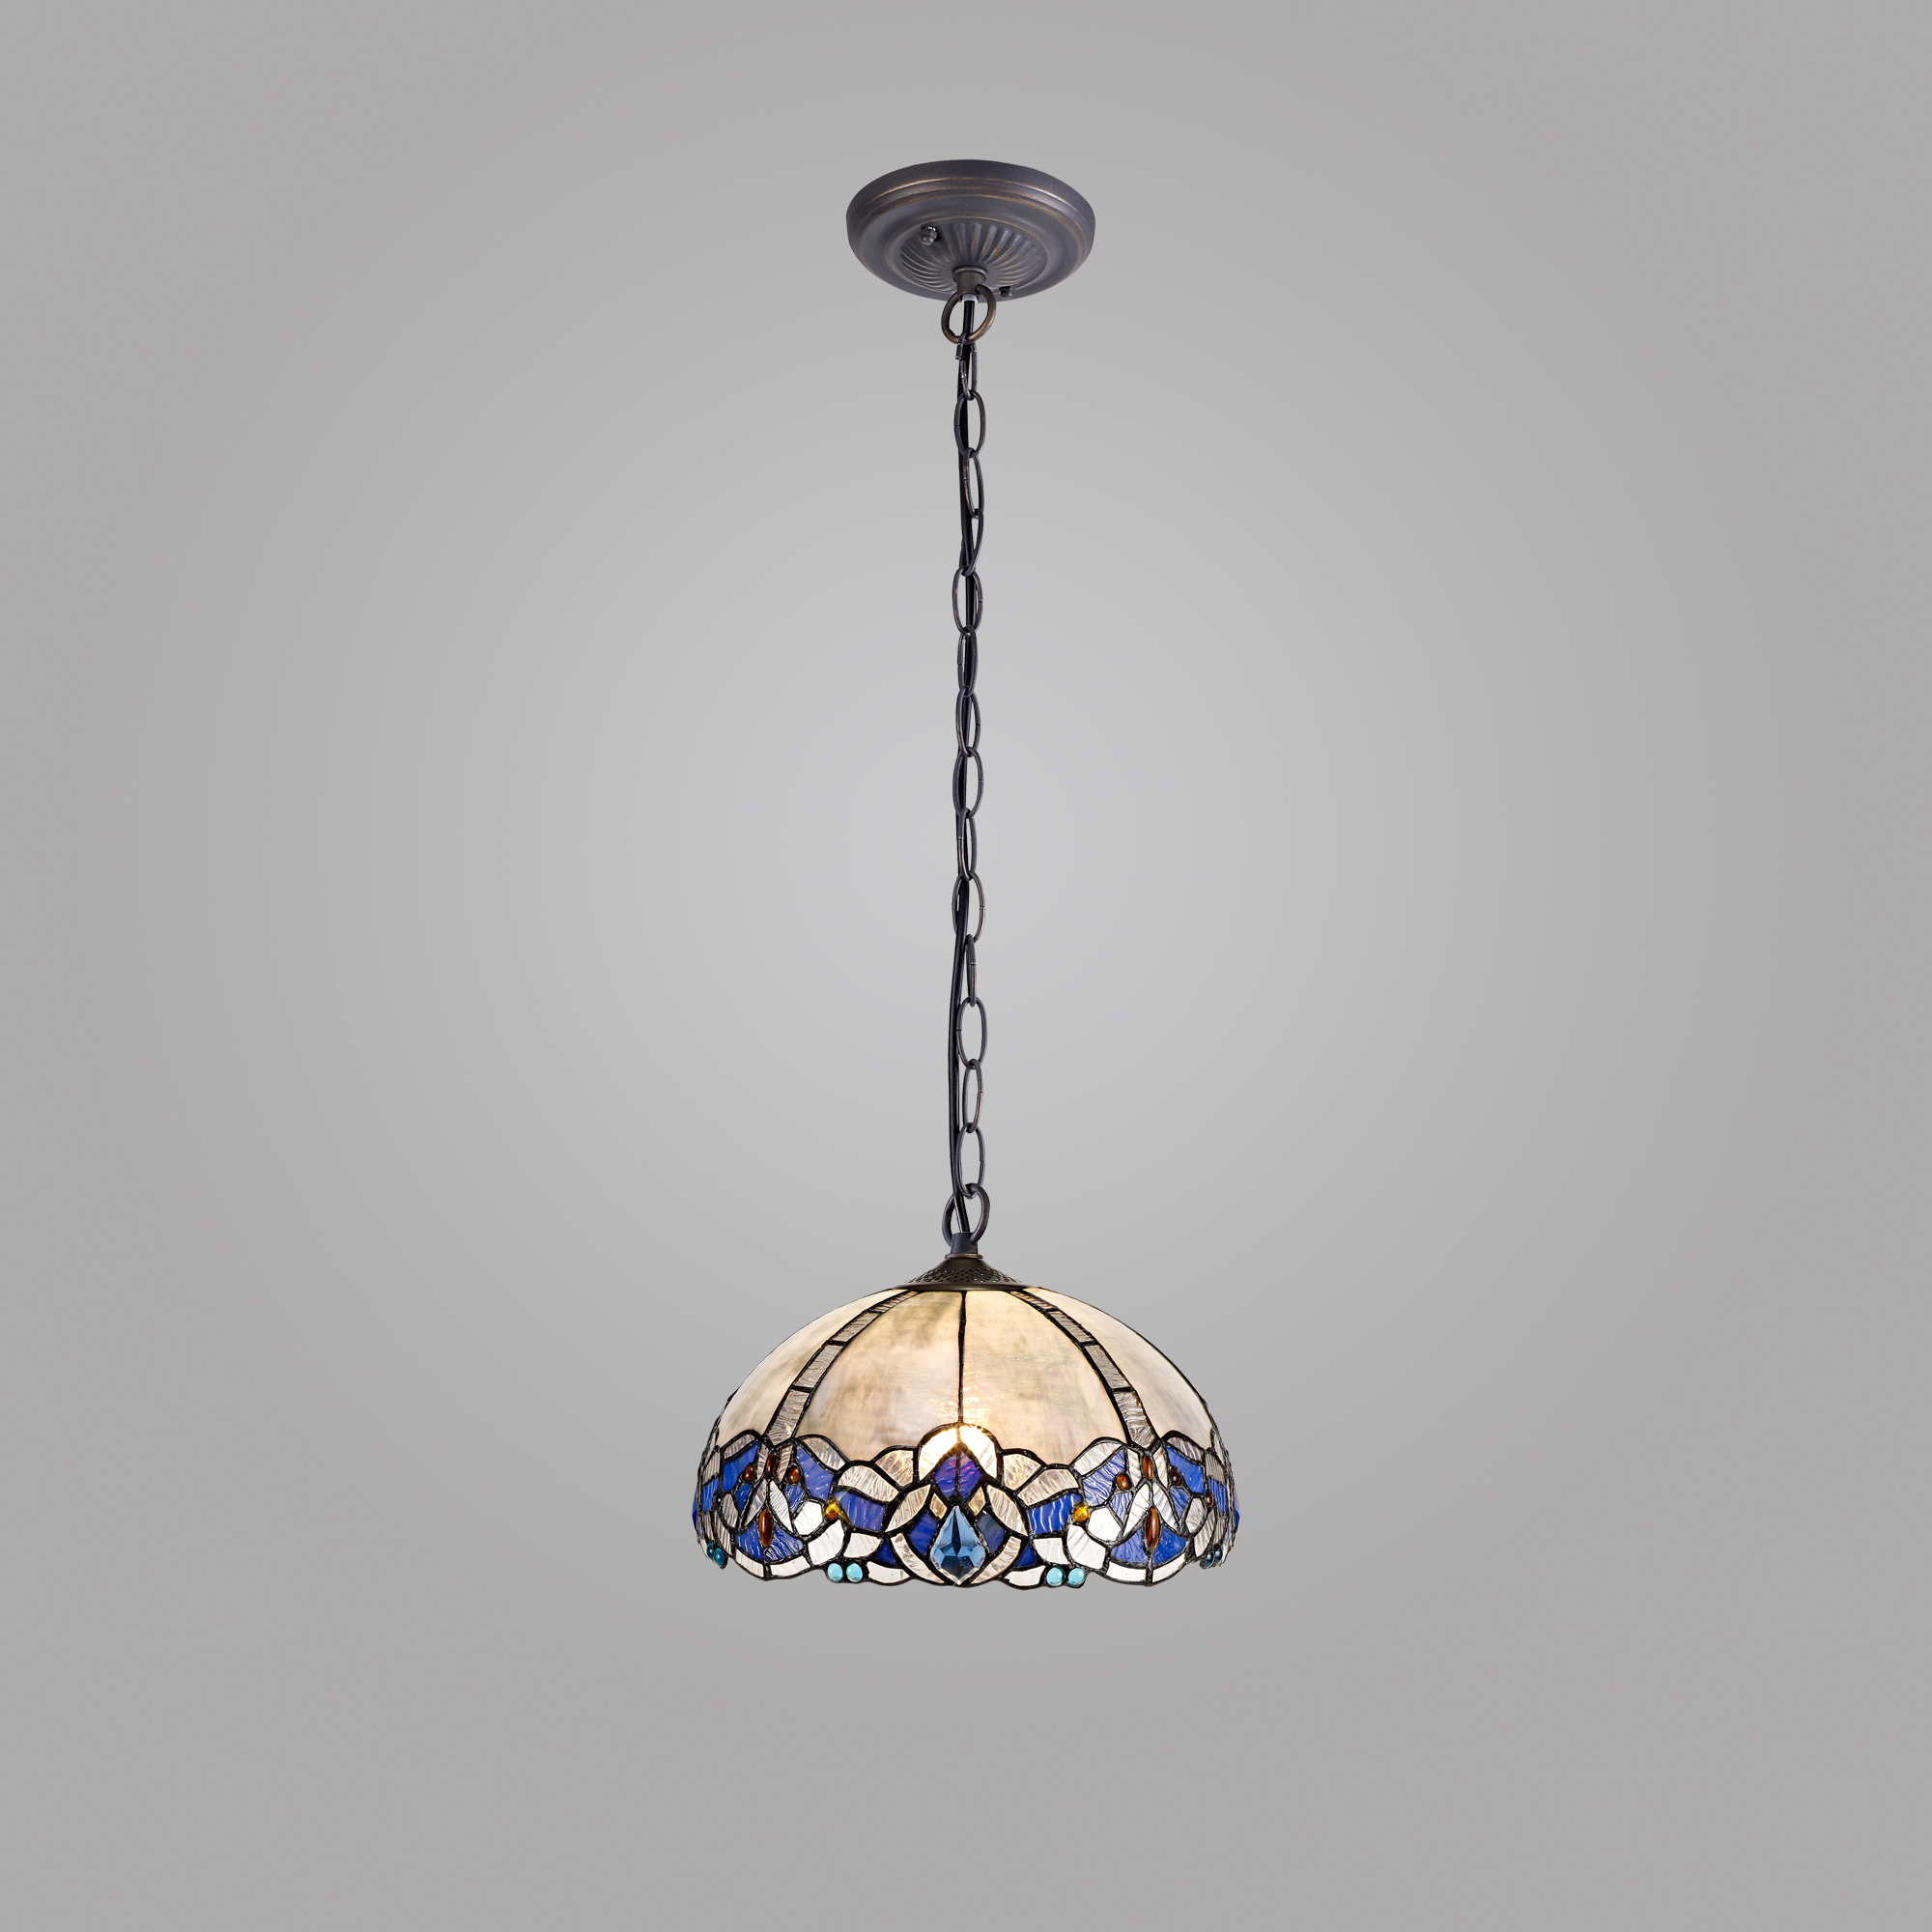 1 Light Downlight Pendant E27 With 30cm Tiffany Shade, Blue/Clear Crystal/Aged Antique Brass